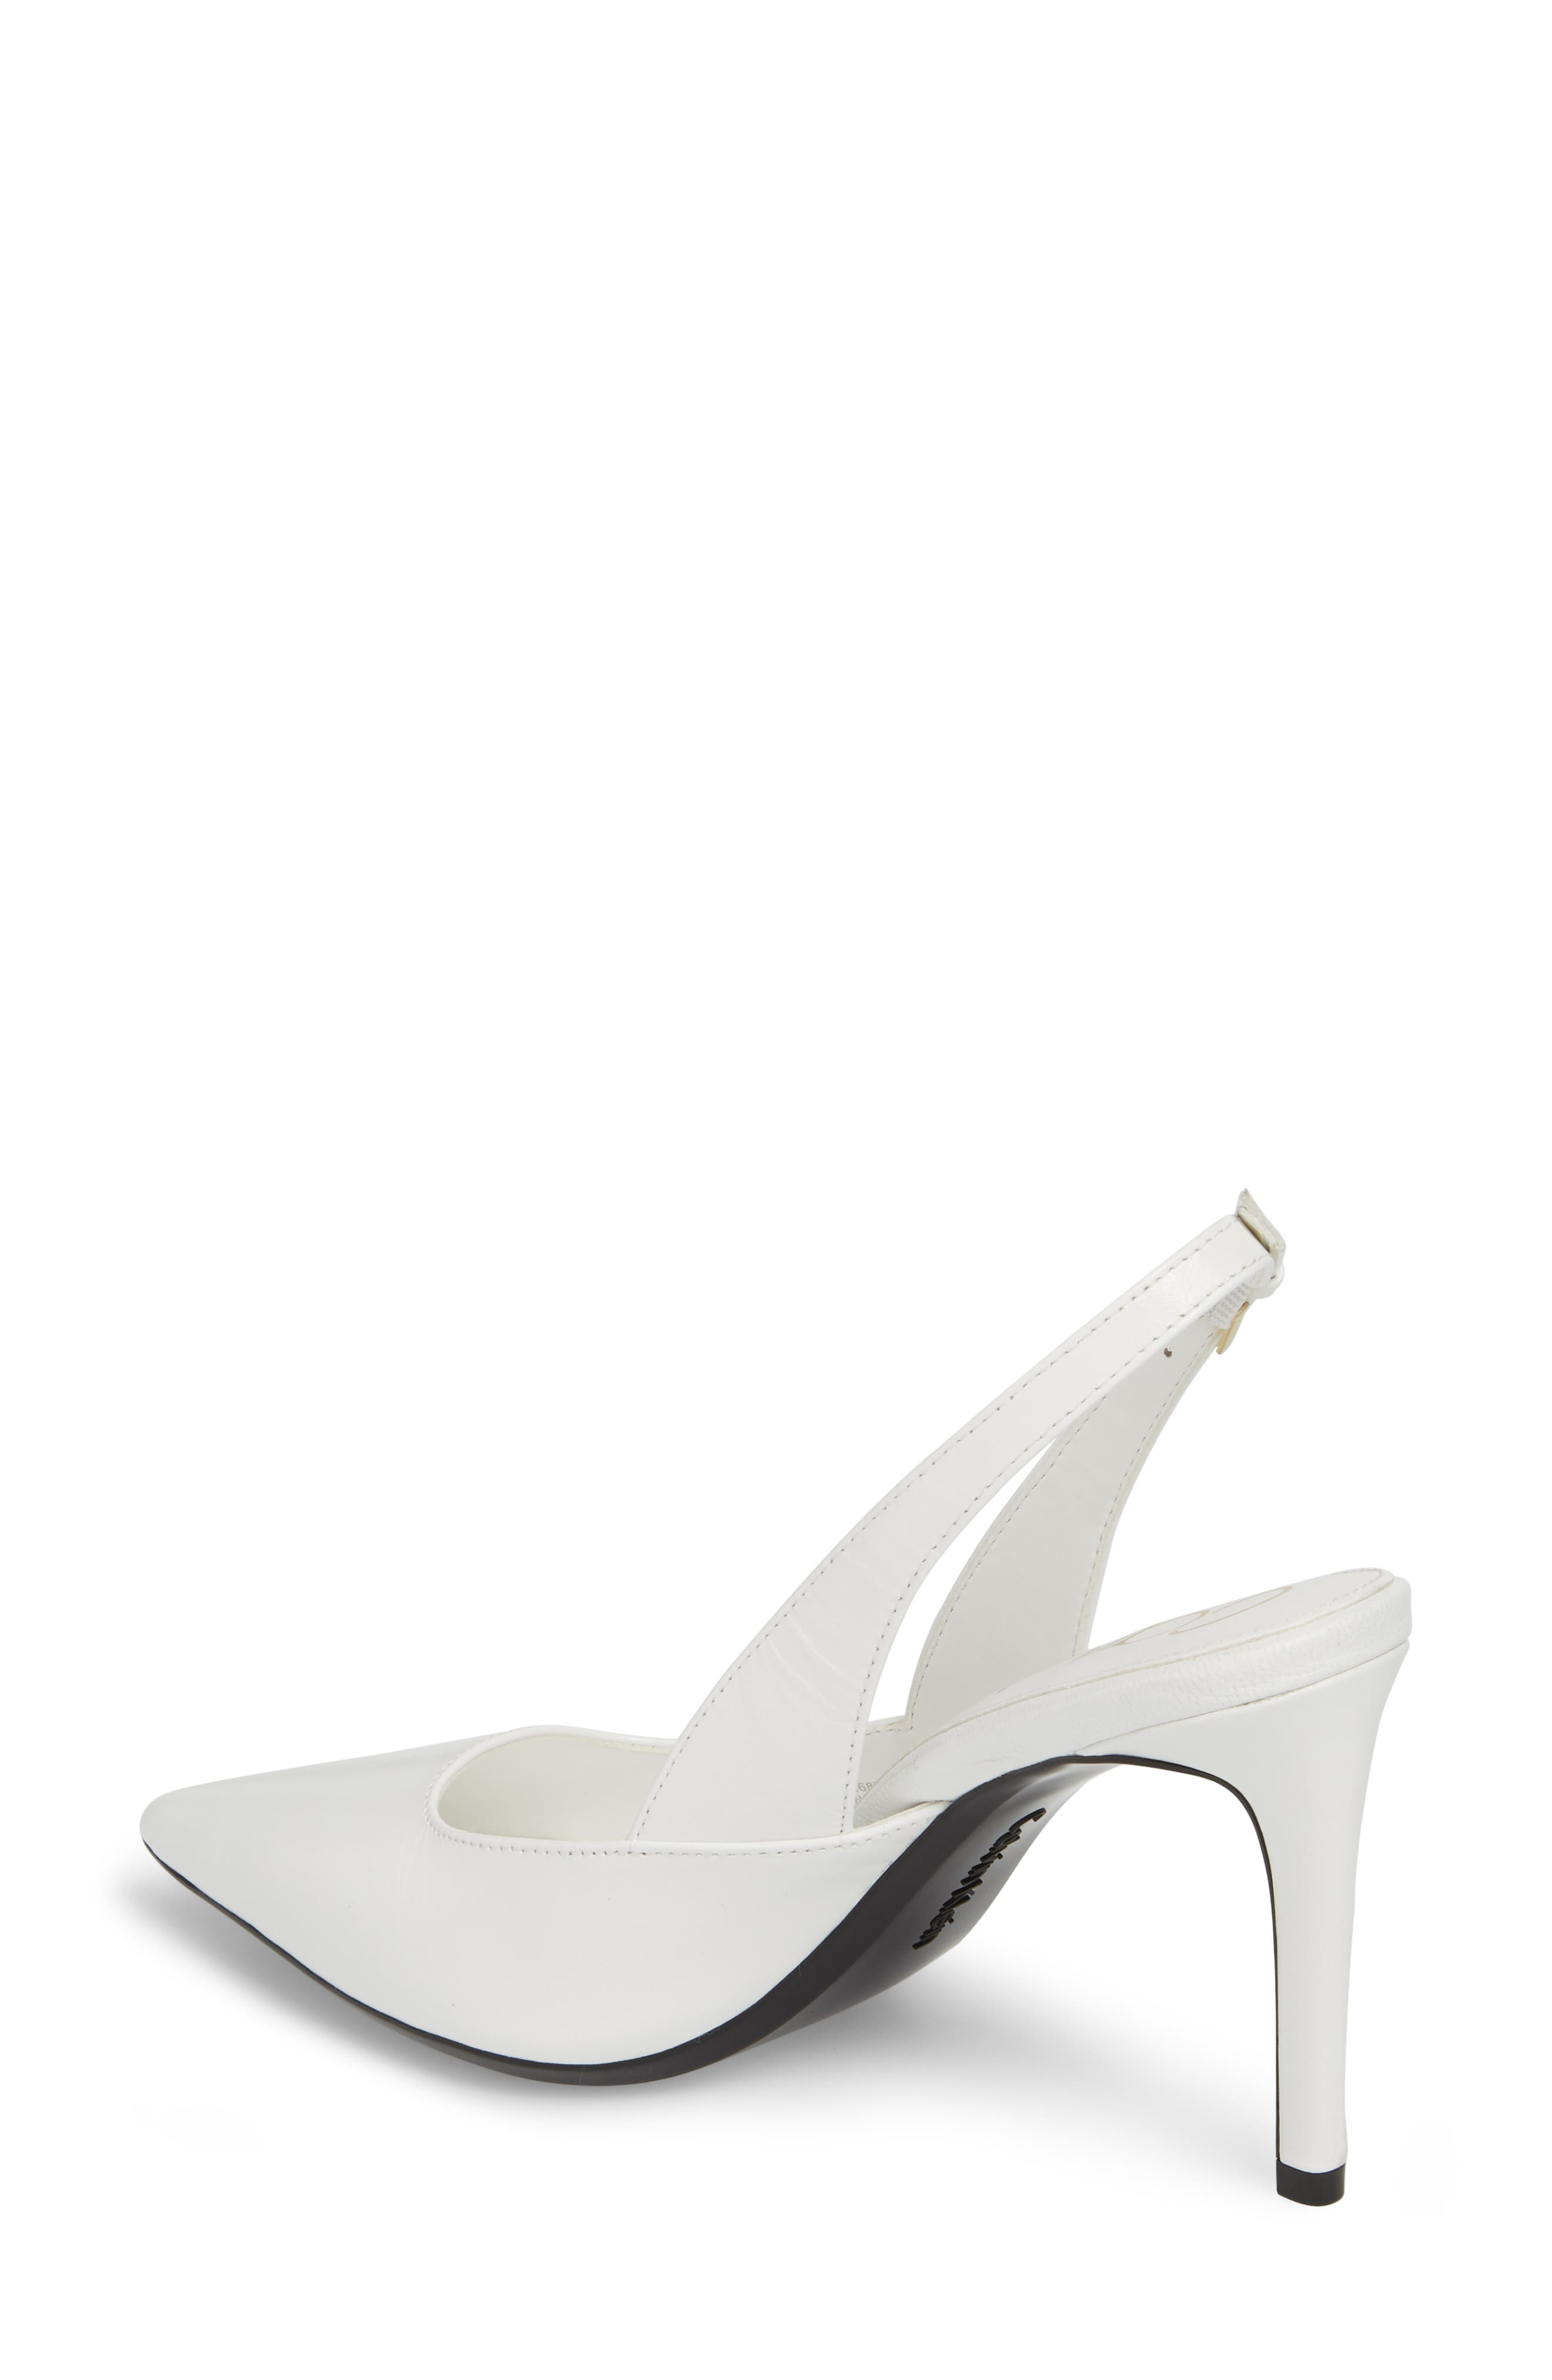 Rielle Slingback Pump,                             Alternate thumbnail 2, color,                             Platinum White Leather